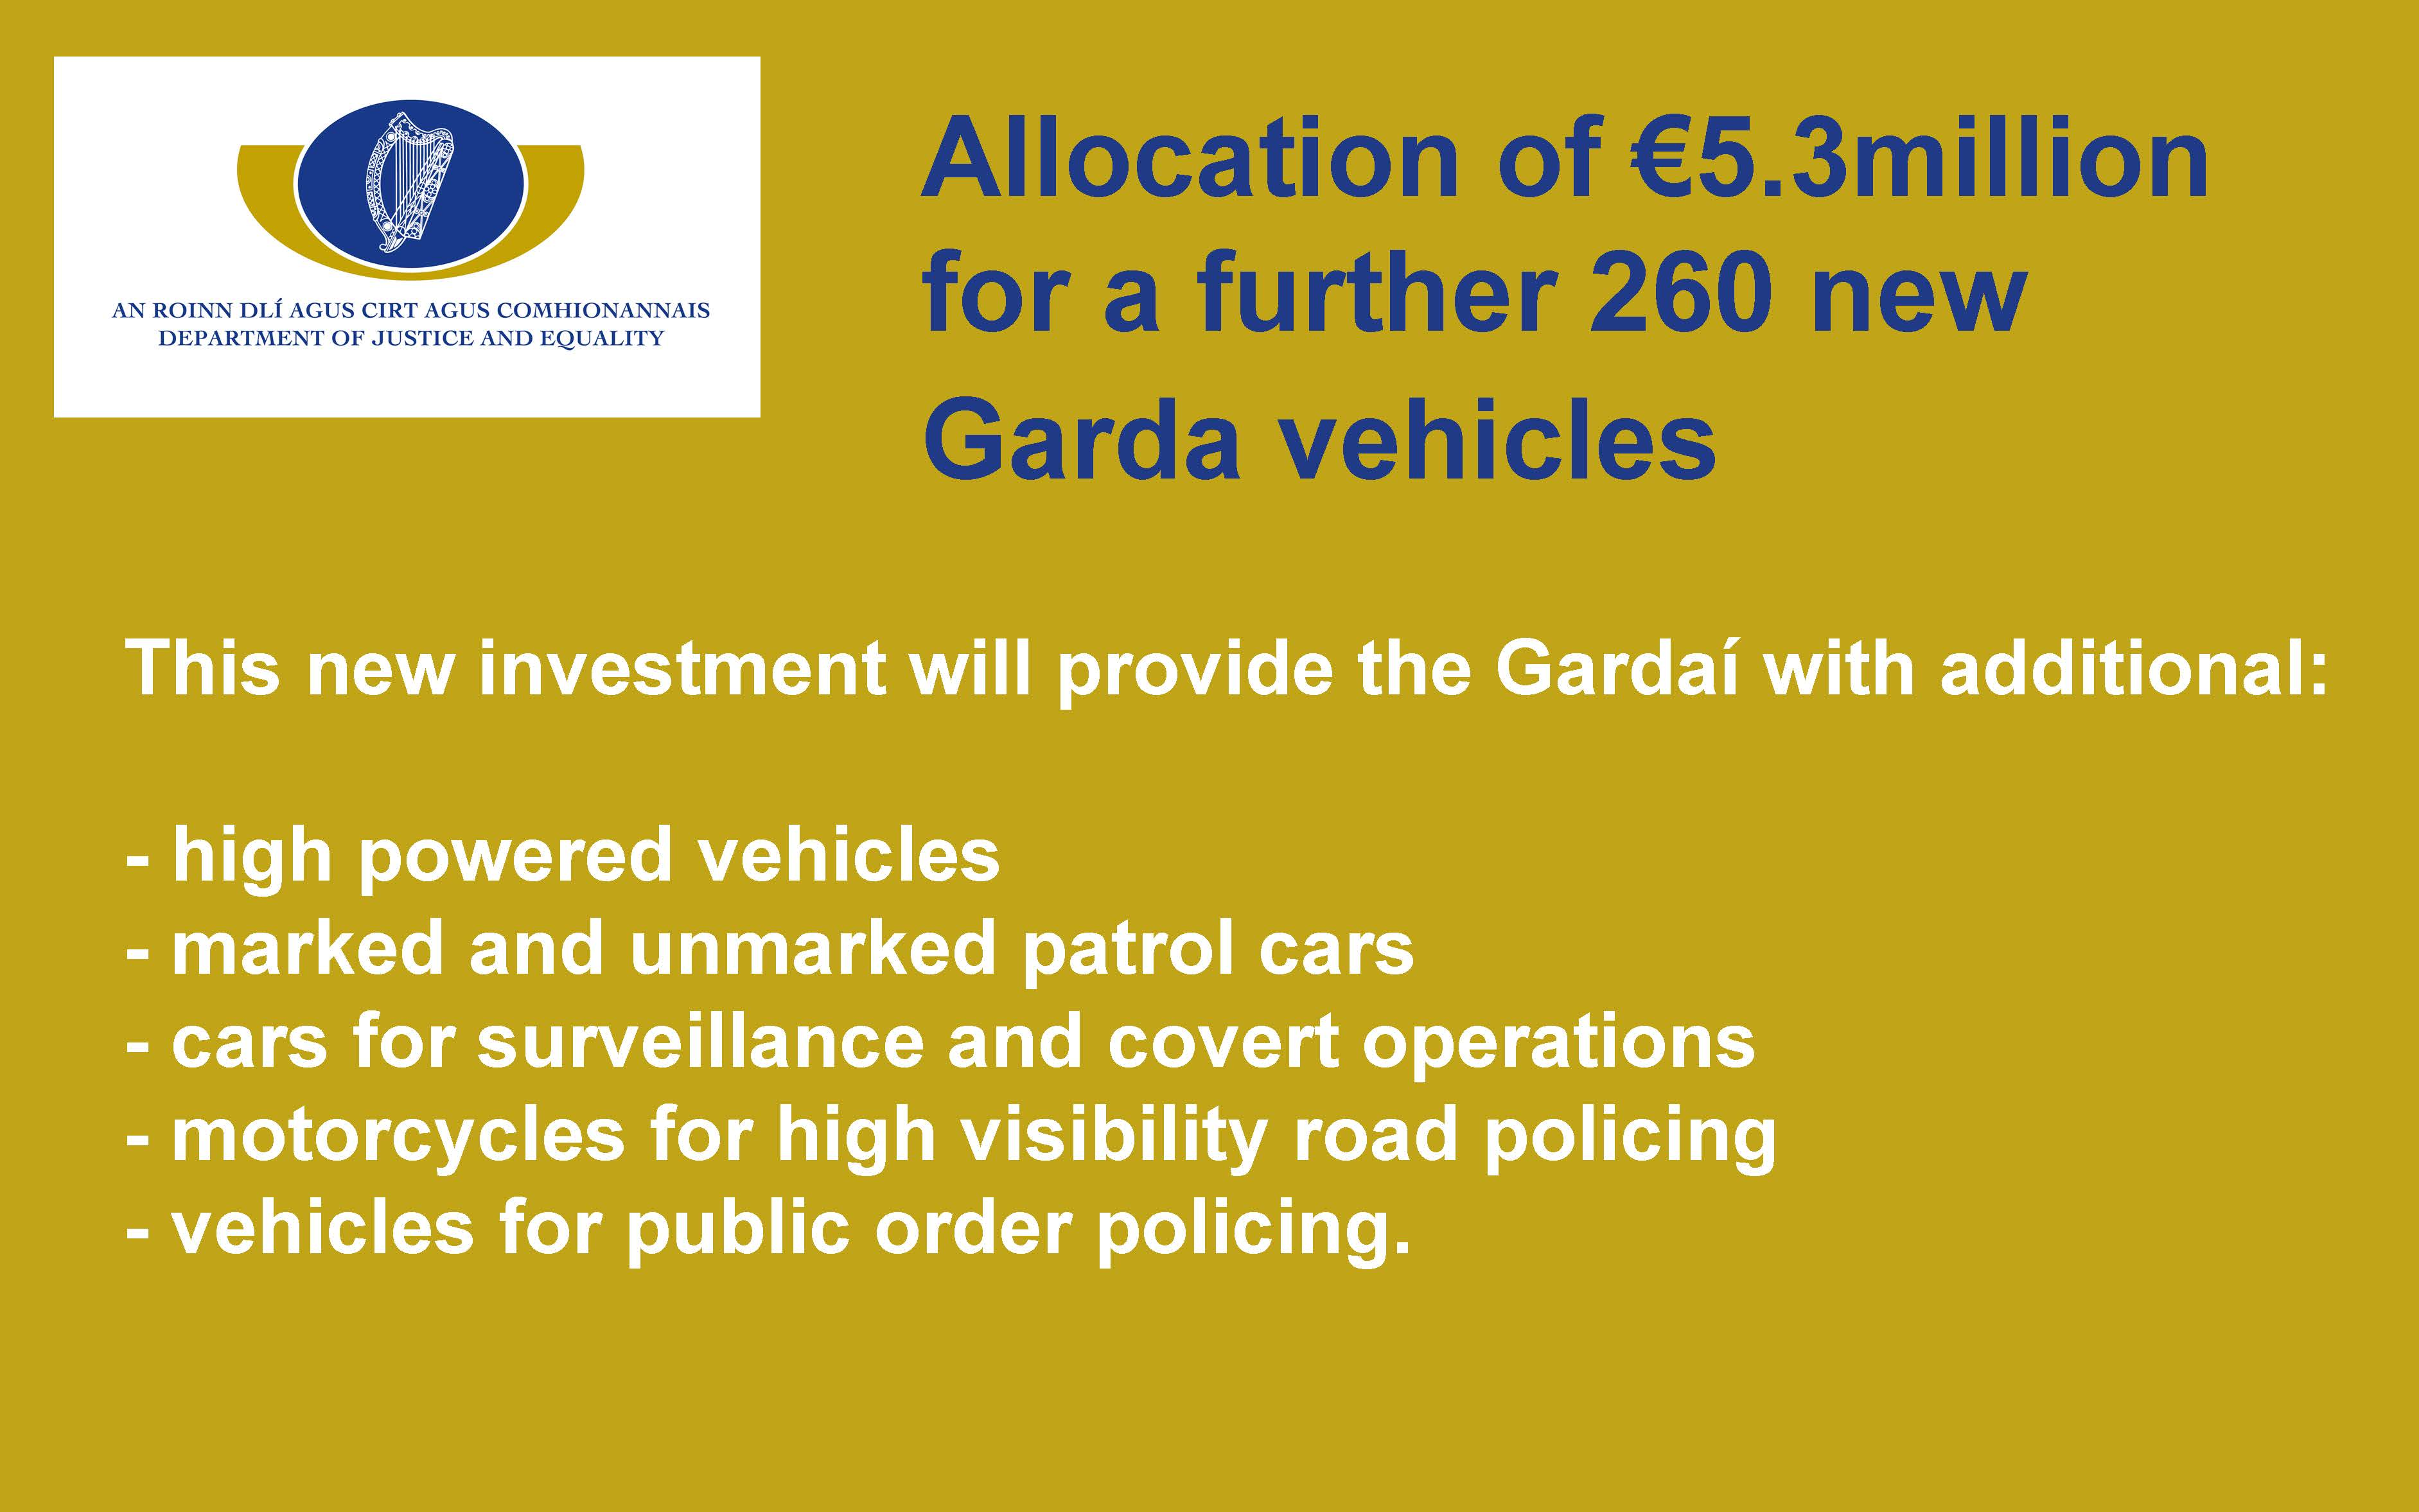 Investment in New Garda Vehicles